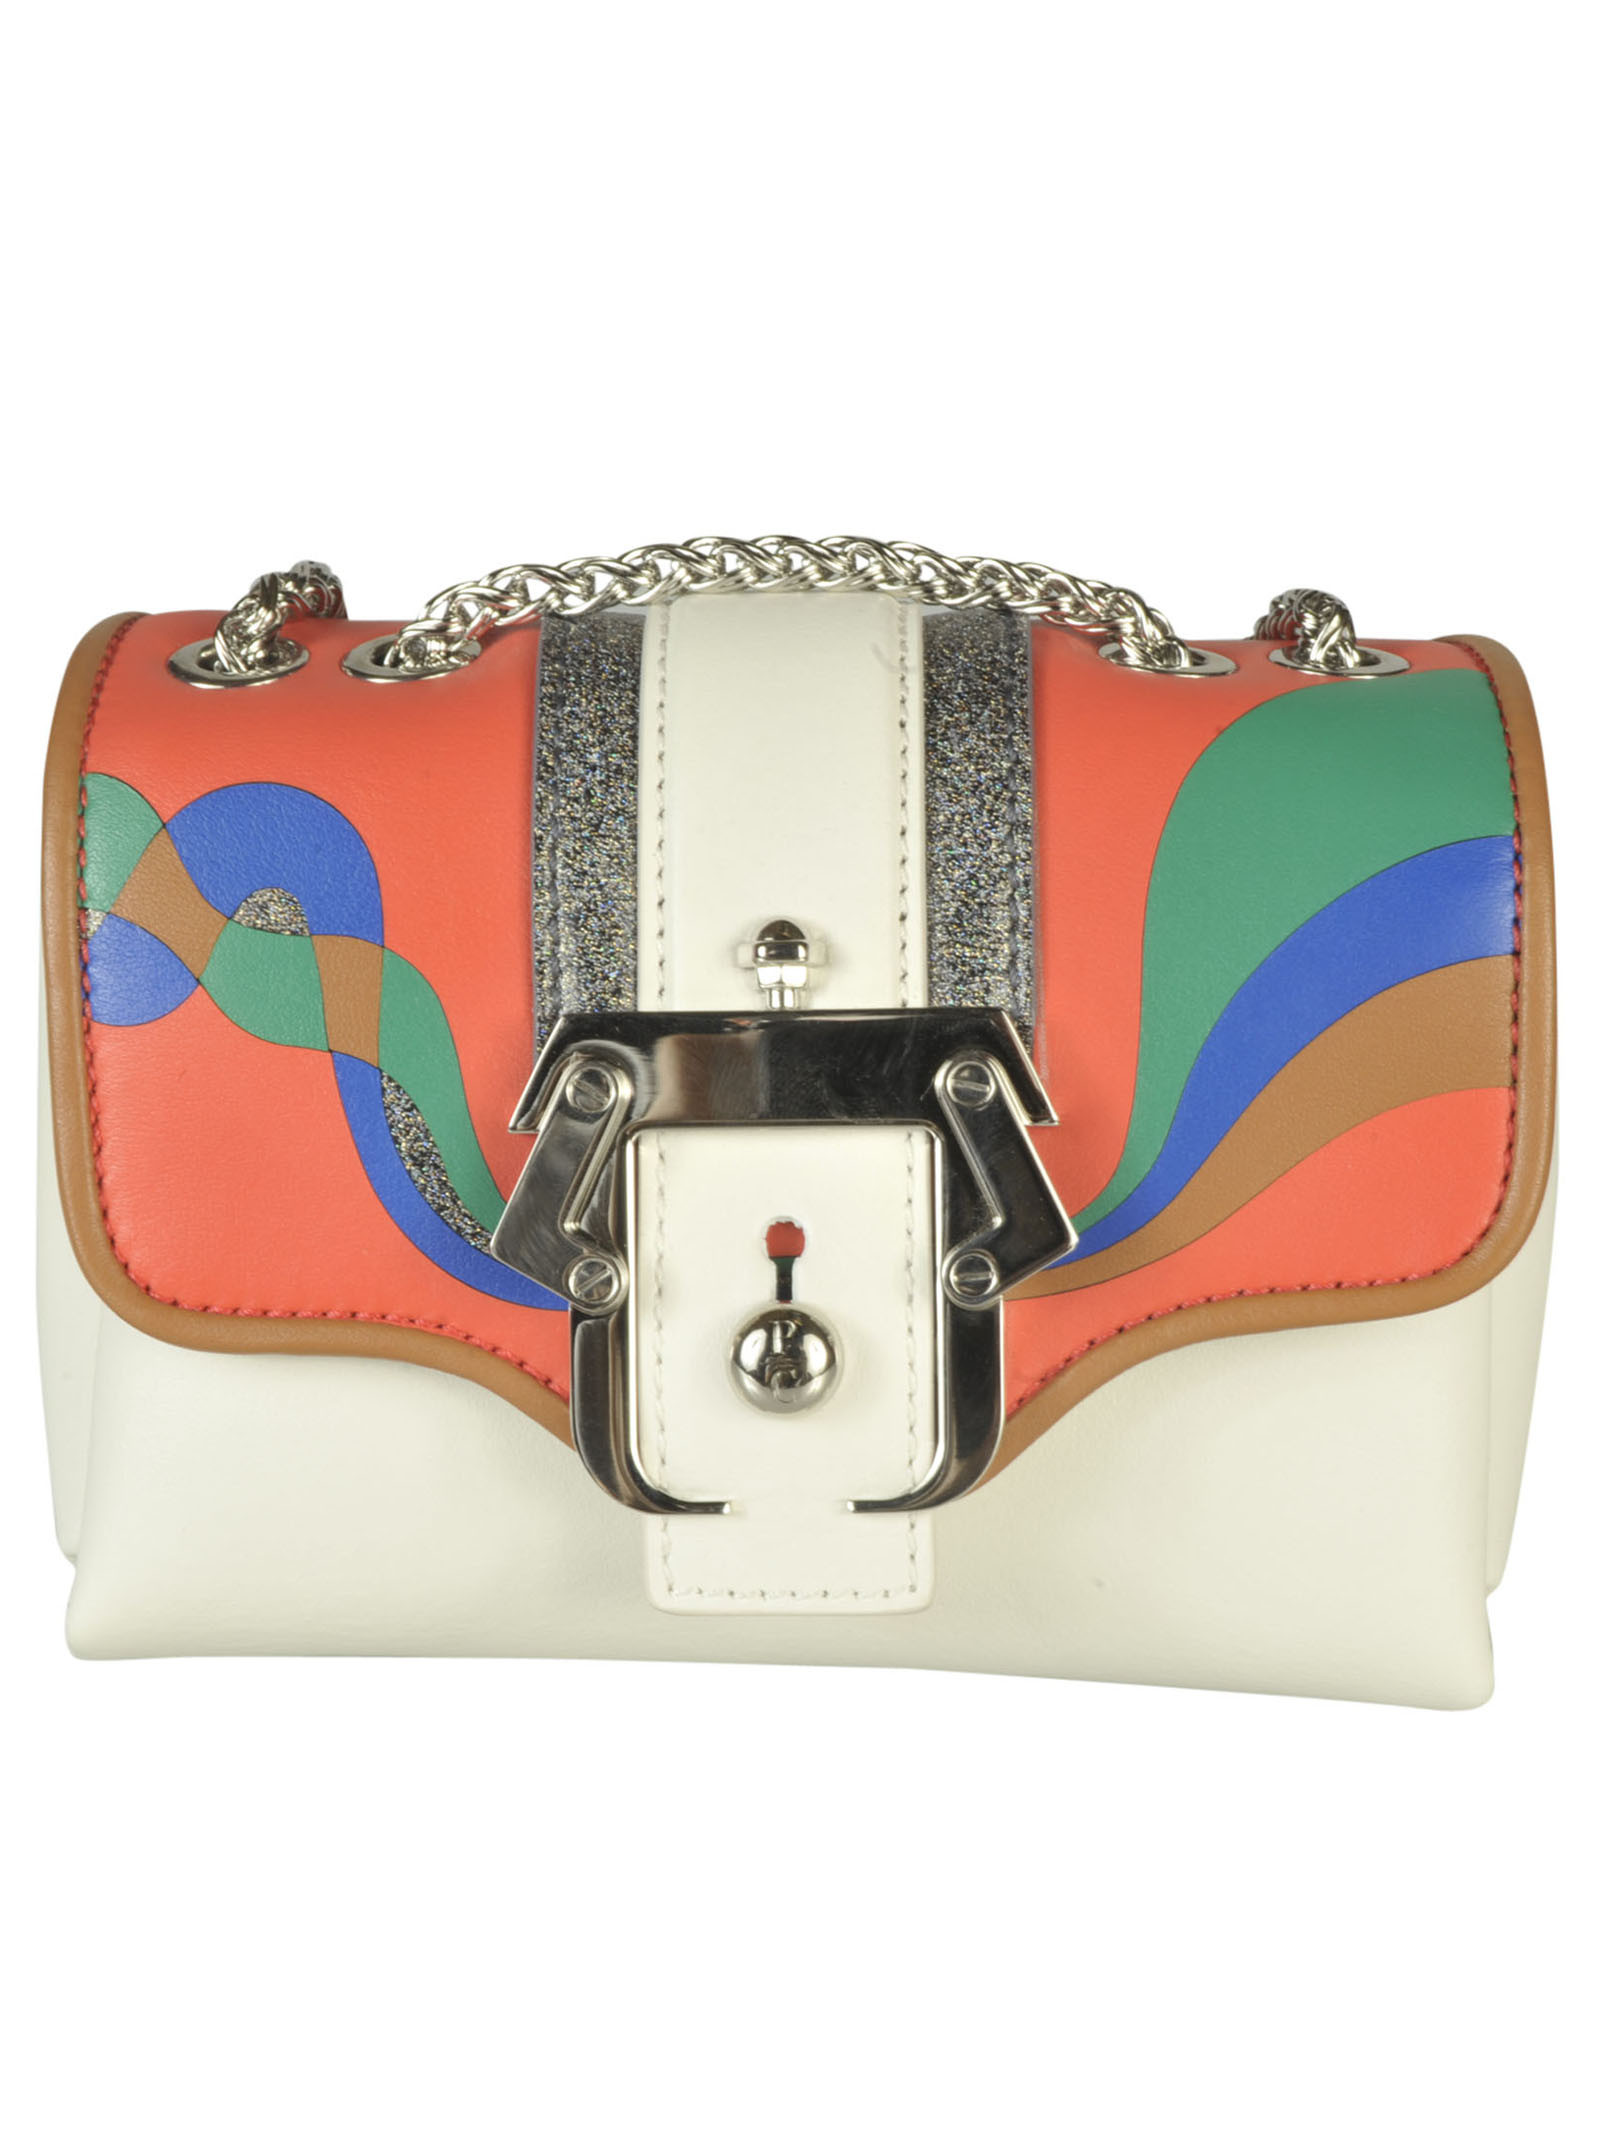 Paula Cademartori Small Kate Clutch - Paula Cademartori - Total